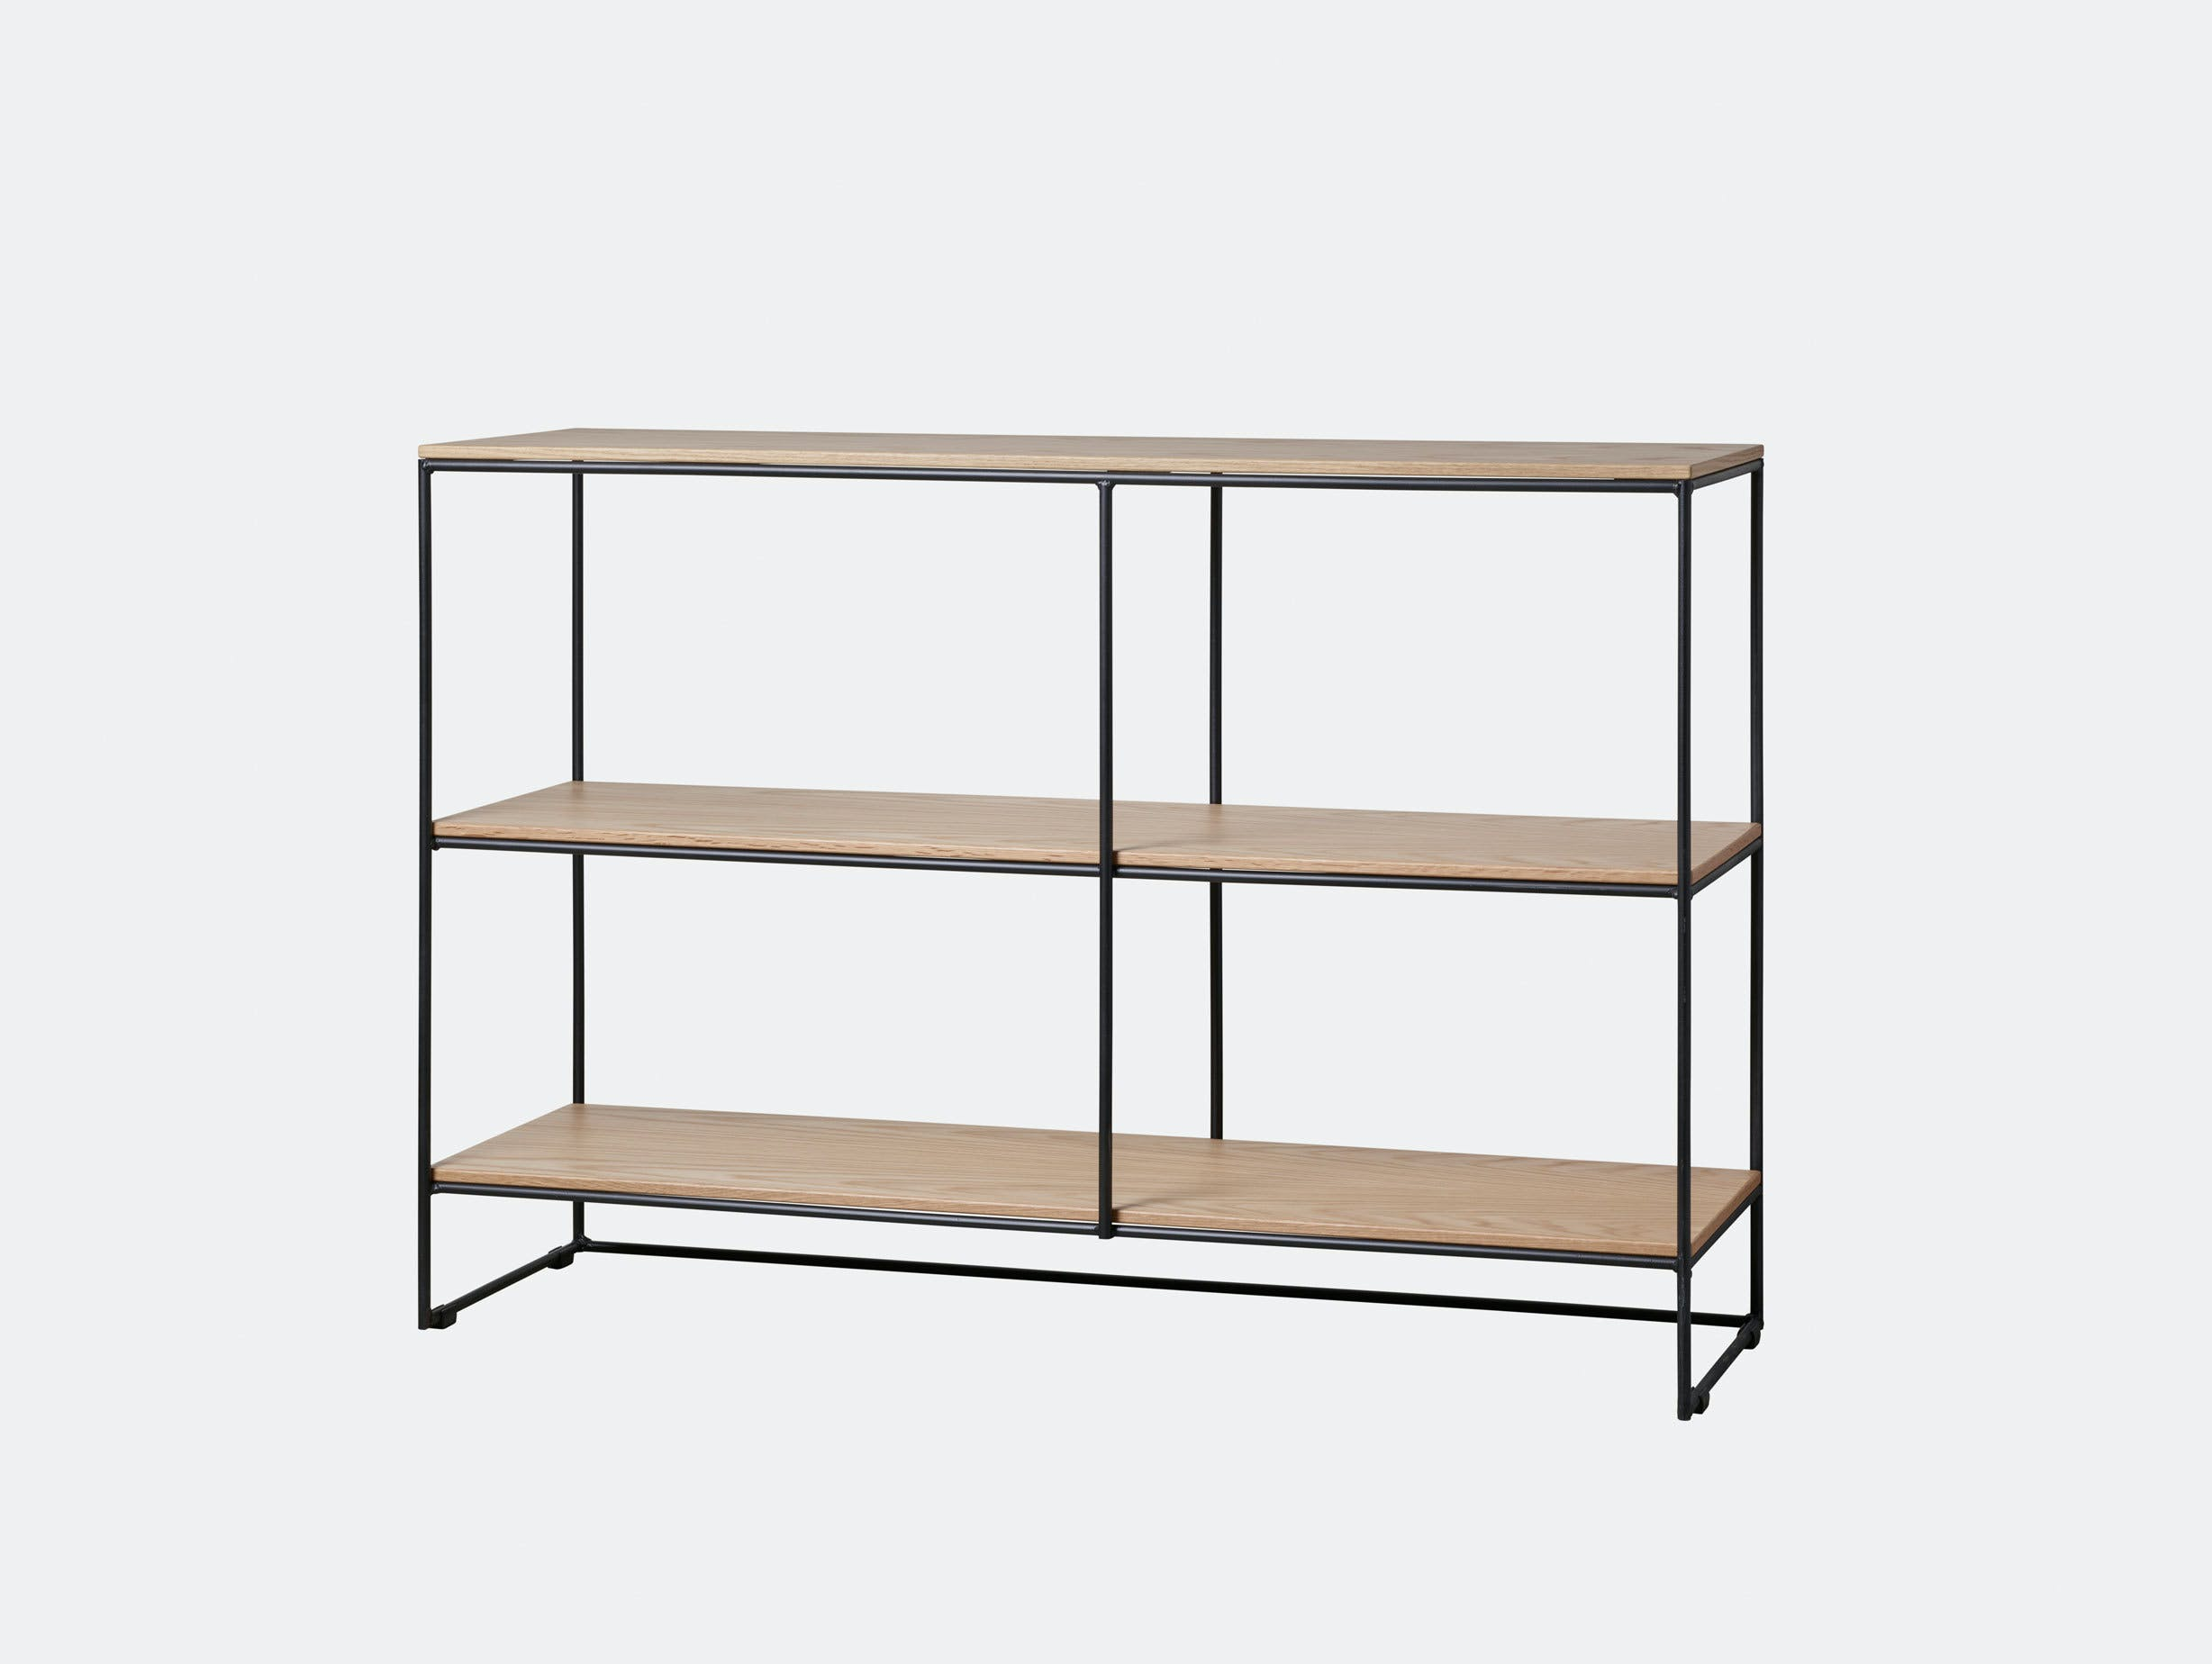 Fritz Hansen Planner Shelving Mc500 Paul Mc Cobb